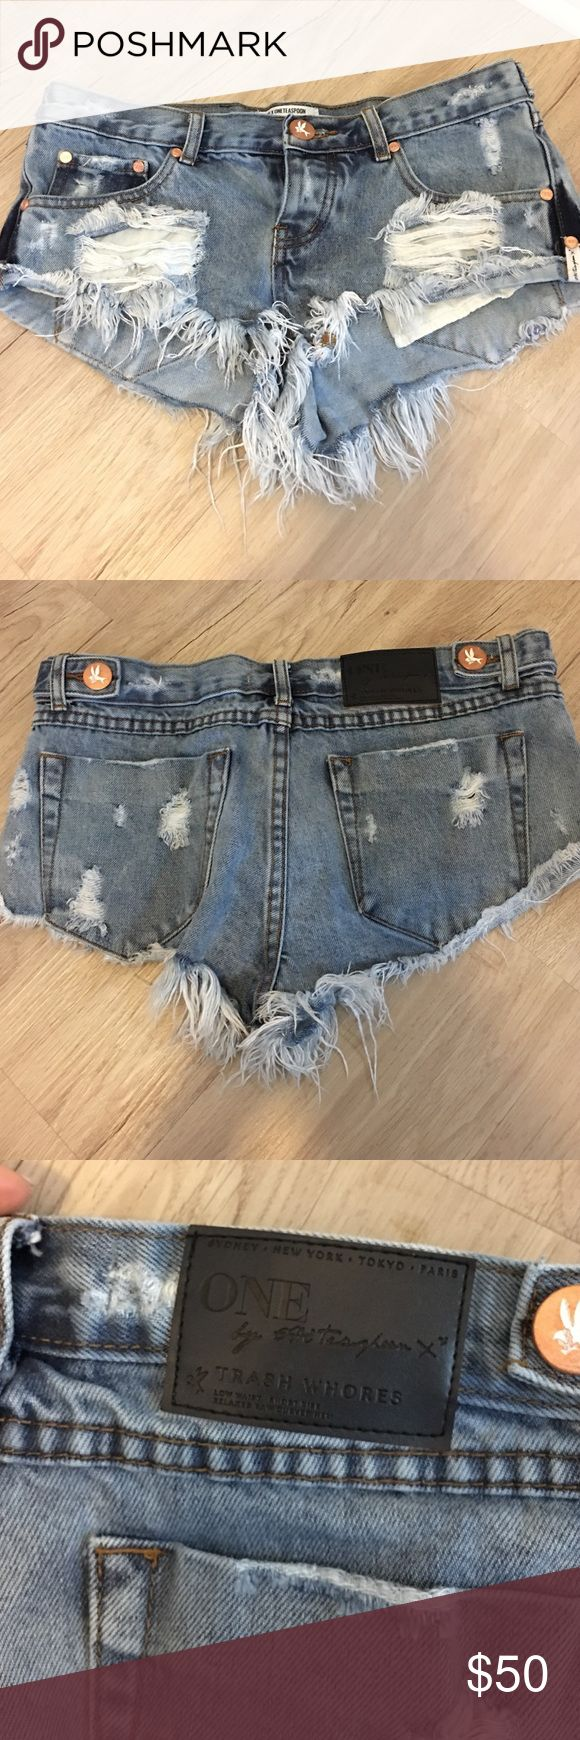 "NWOT. One Teaspoon shorts in style ""trashwores"" NWOT. One Teaspoon denim shorts in style ""trashwores"" never worn. One Teaspoon Shorts Jean Shorts"